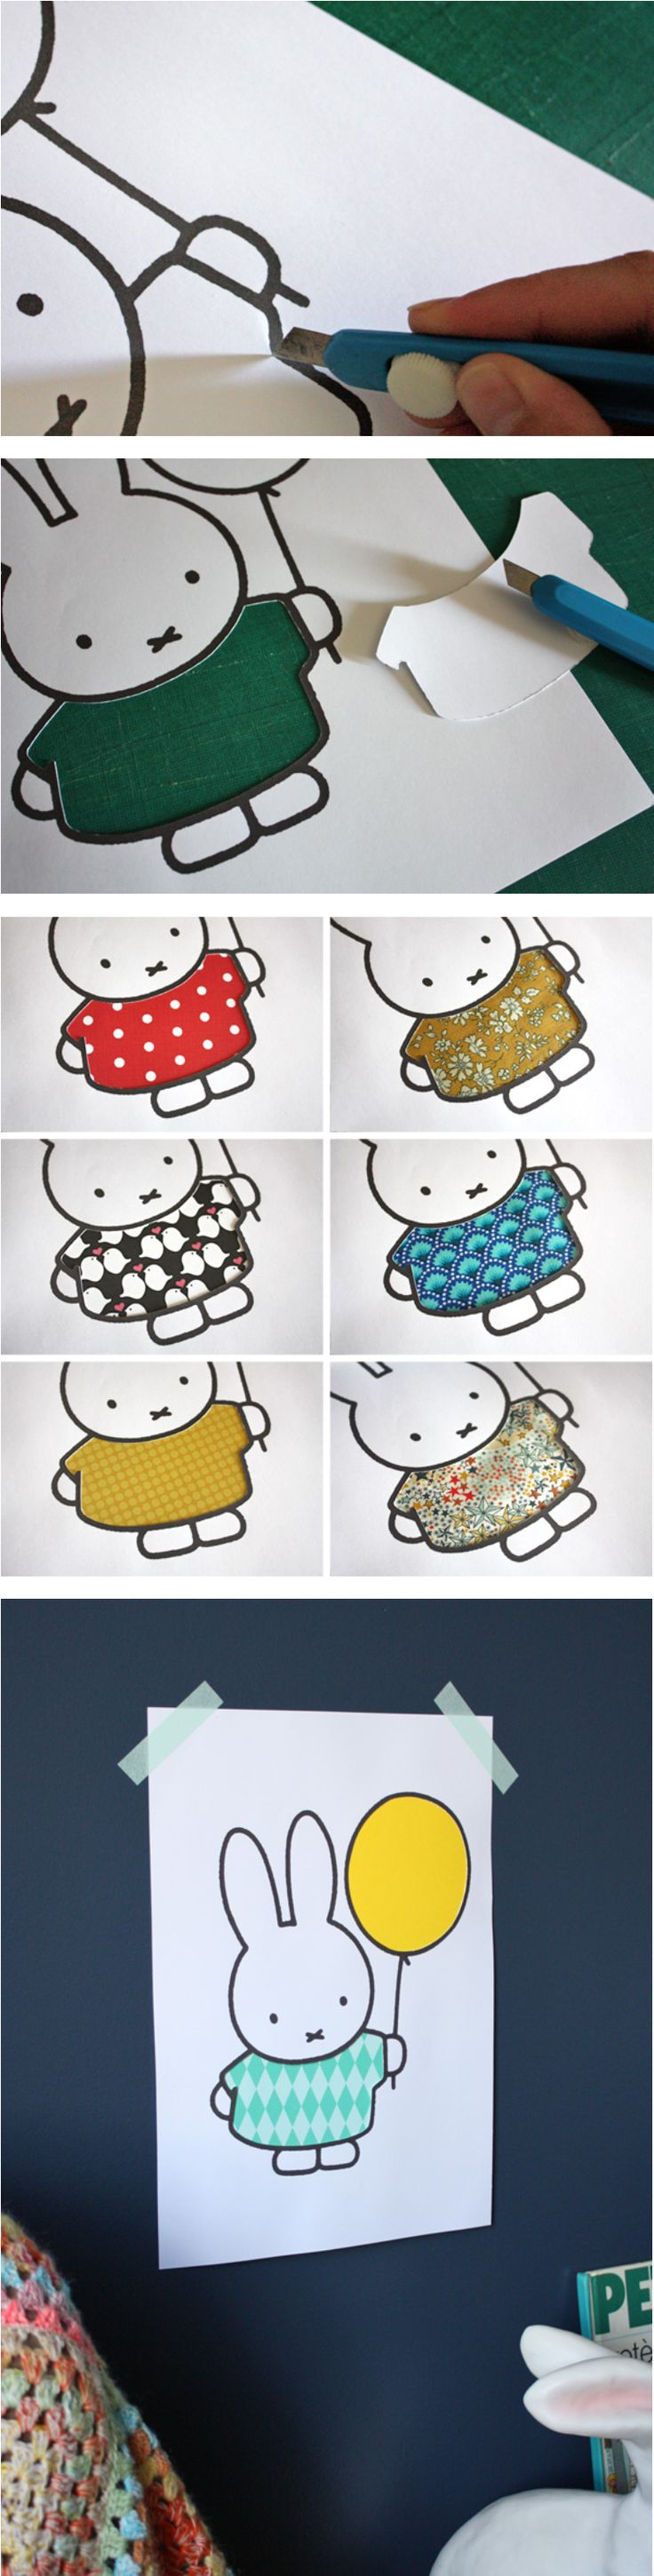 Could do the same with Hello Kitty